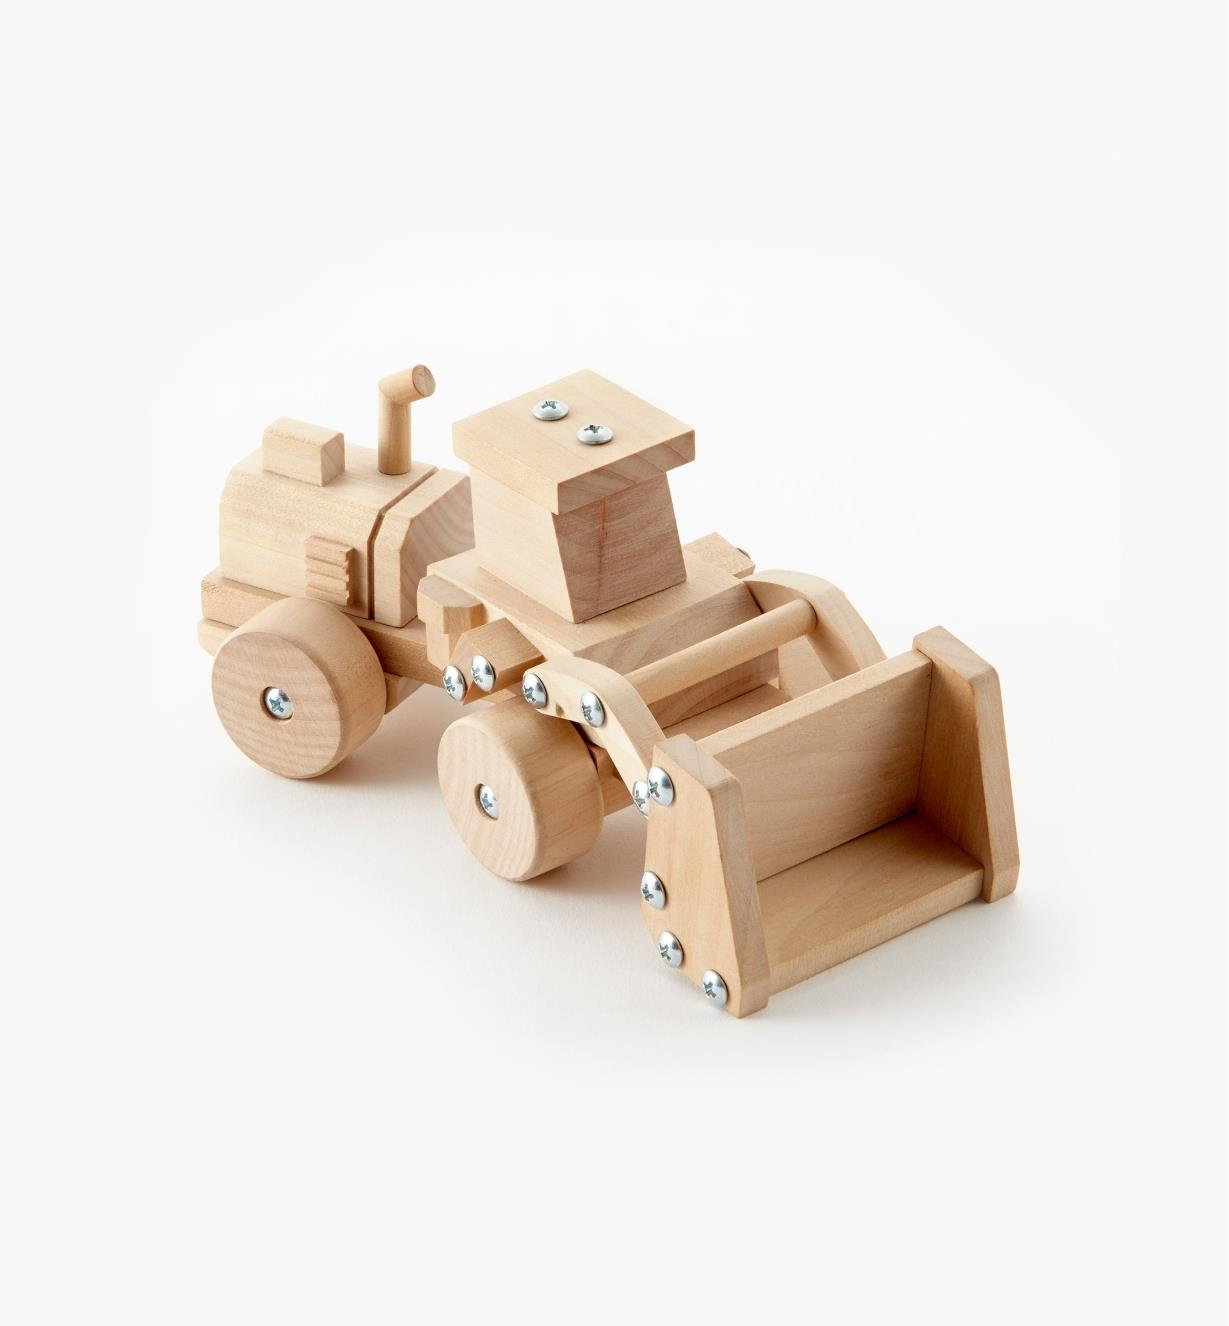 09A0558 - Front-End Loader Easy-To-Build Wooden Toy Kit